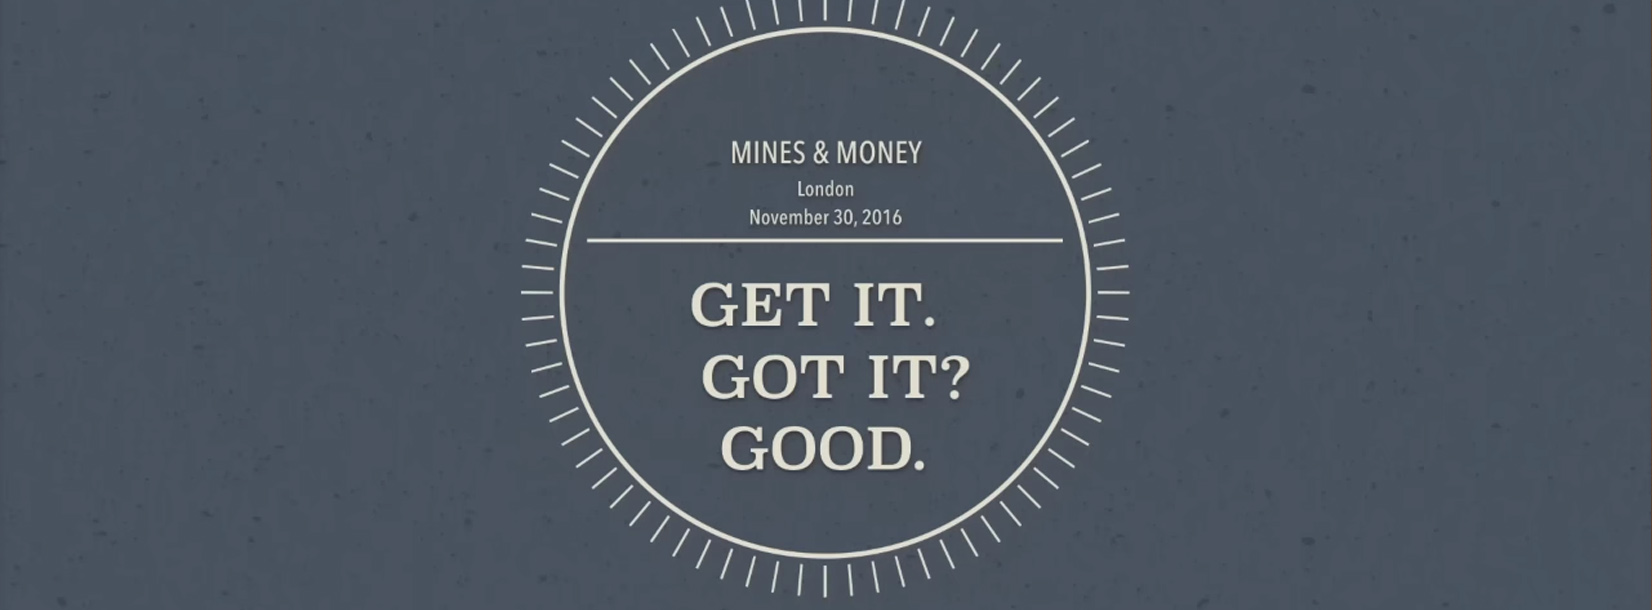 2016 Mines & Money Presentation: Get It. Got It? Good.